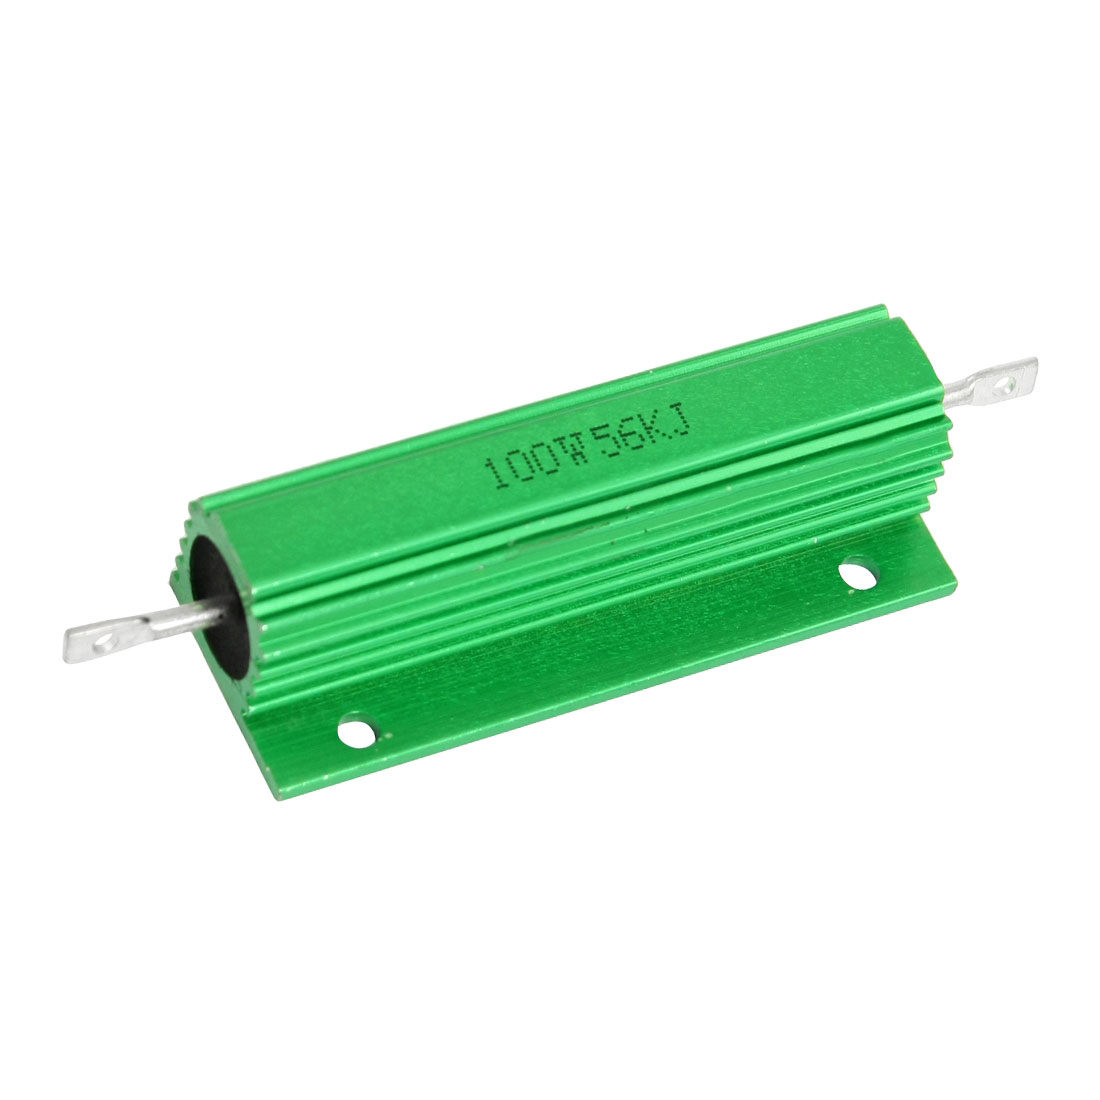 100W 56K Ohm Green Aluminium Clad Chassis Mounted Housed Resistor